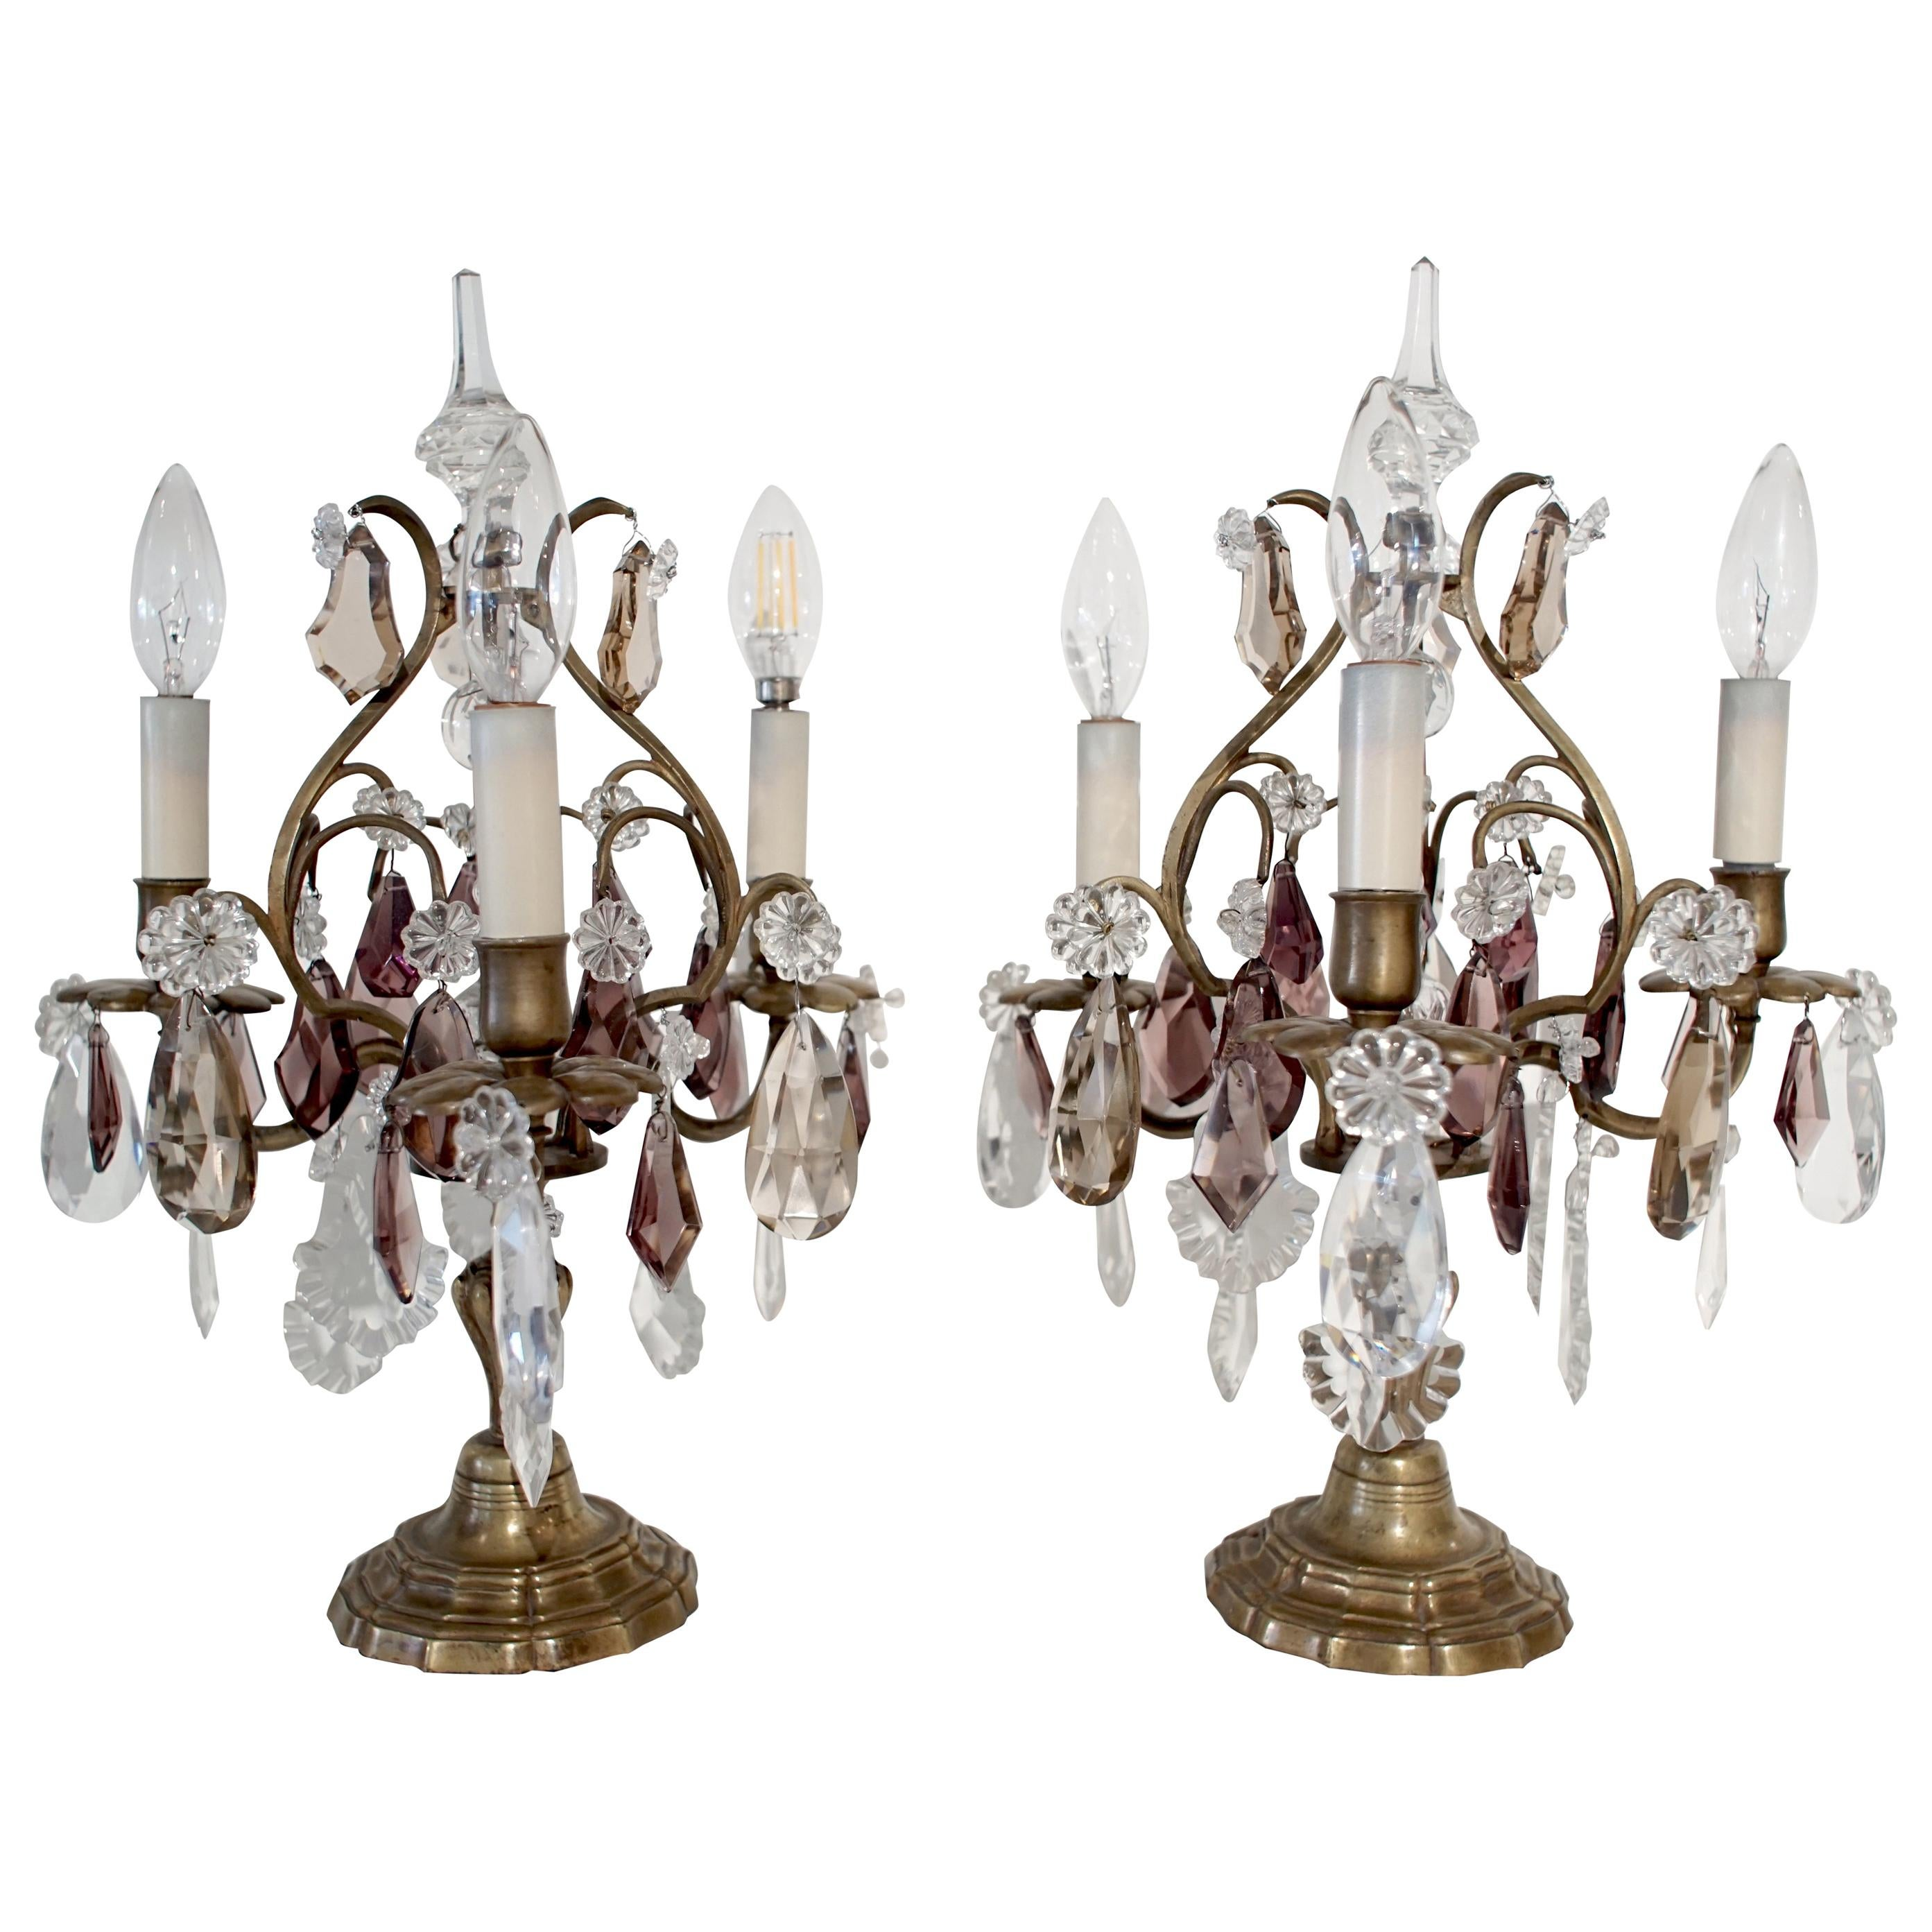 French Pair of Bronze Girandoles Candelabras with Clear and Amethyst Crystals